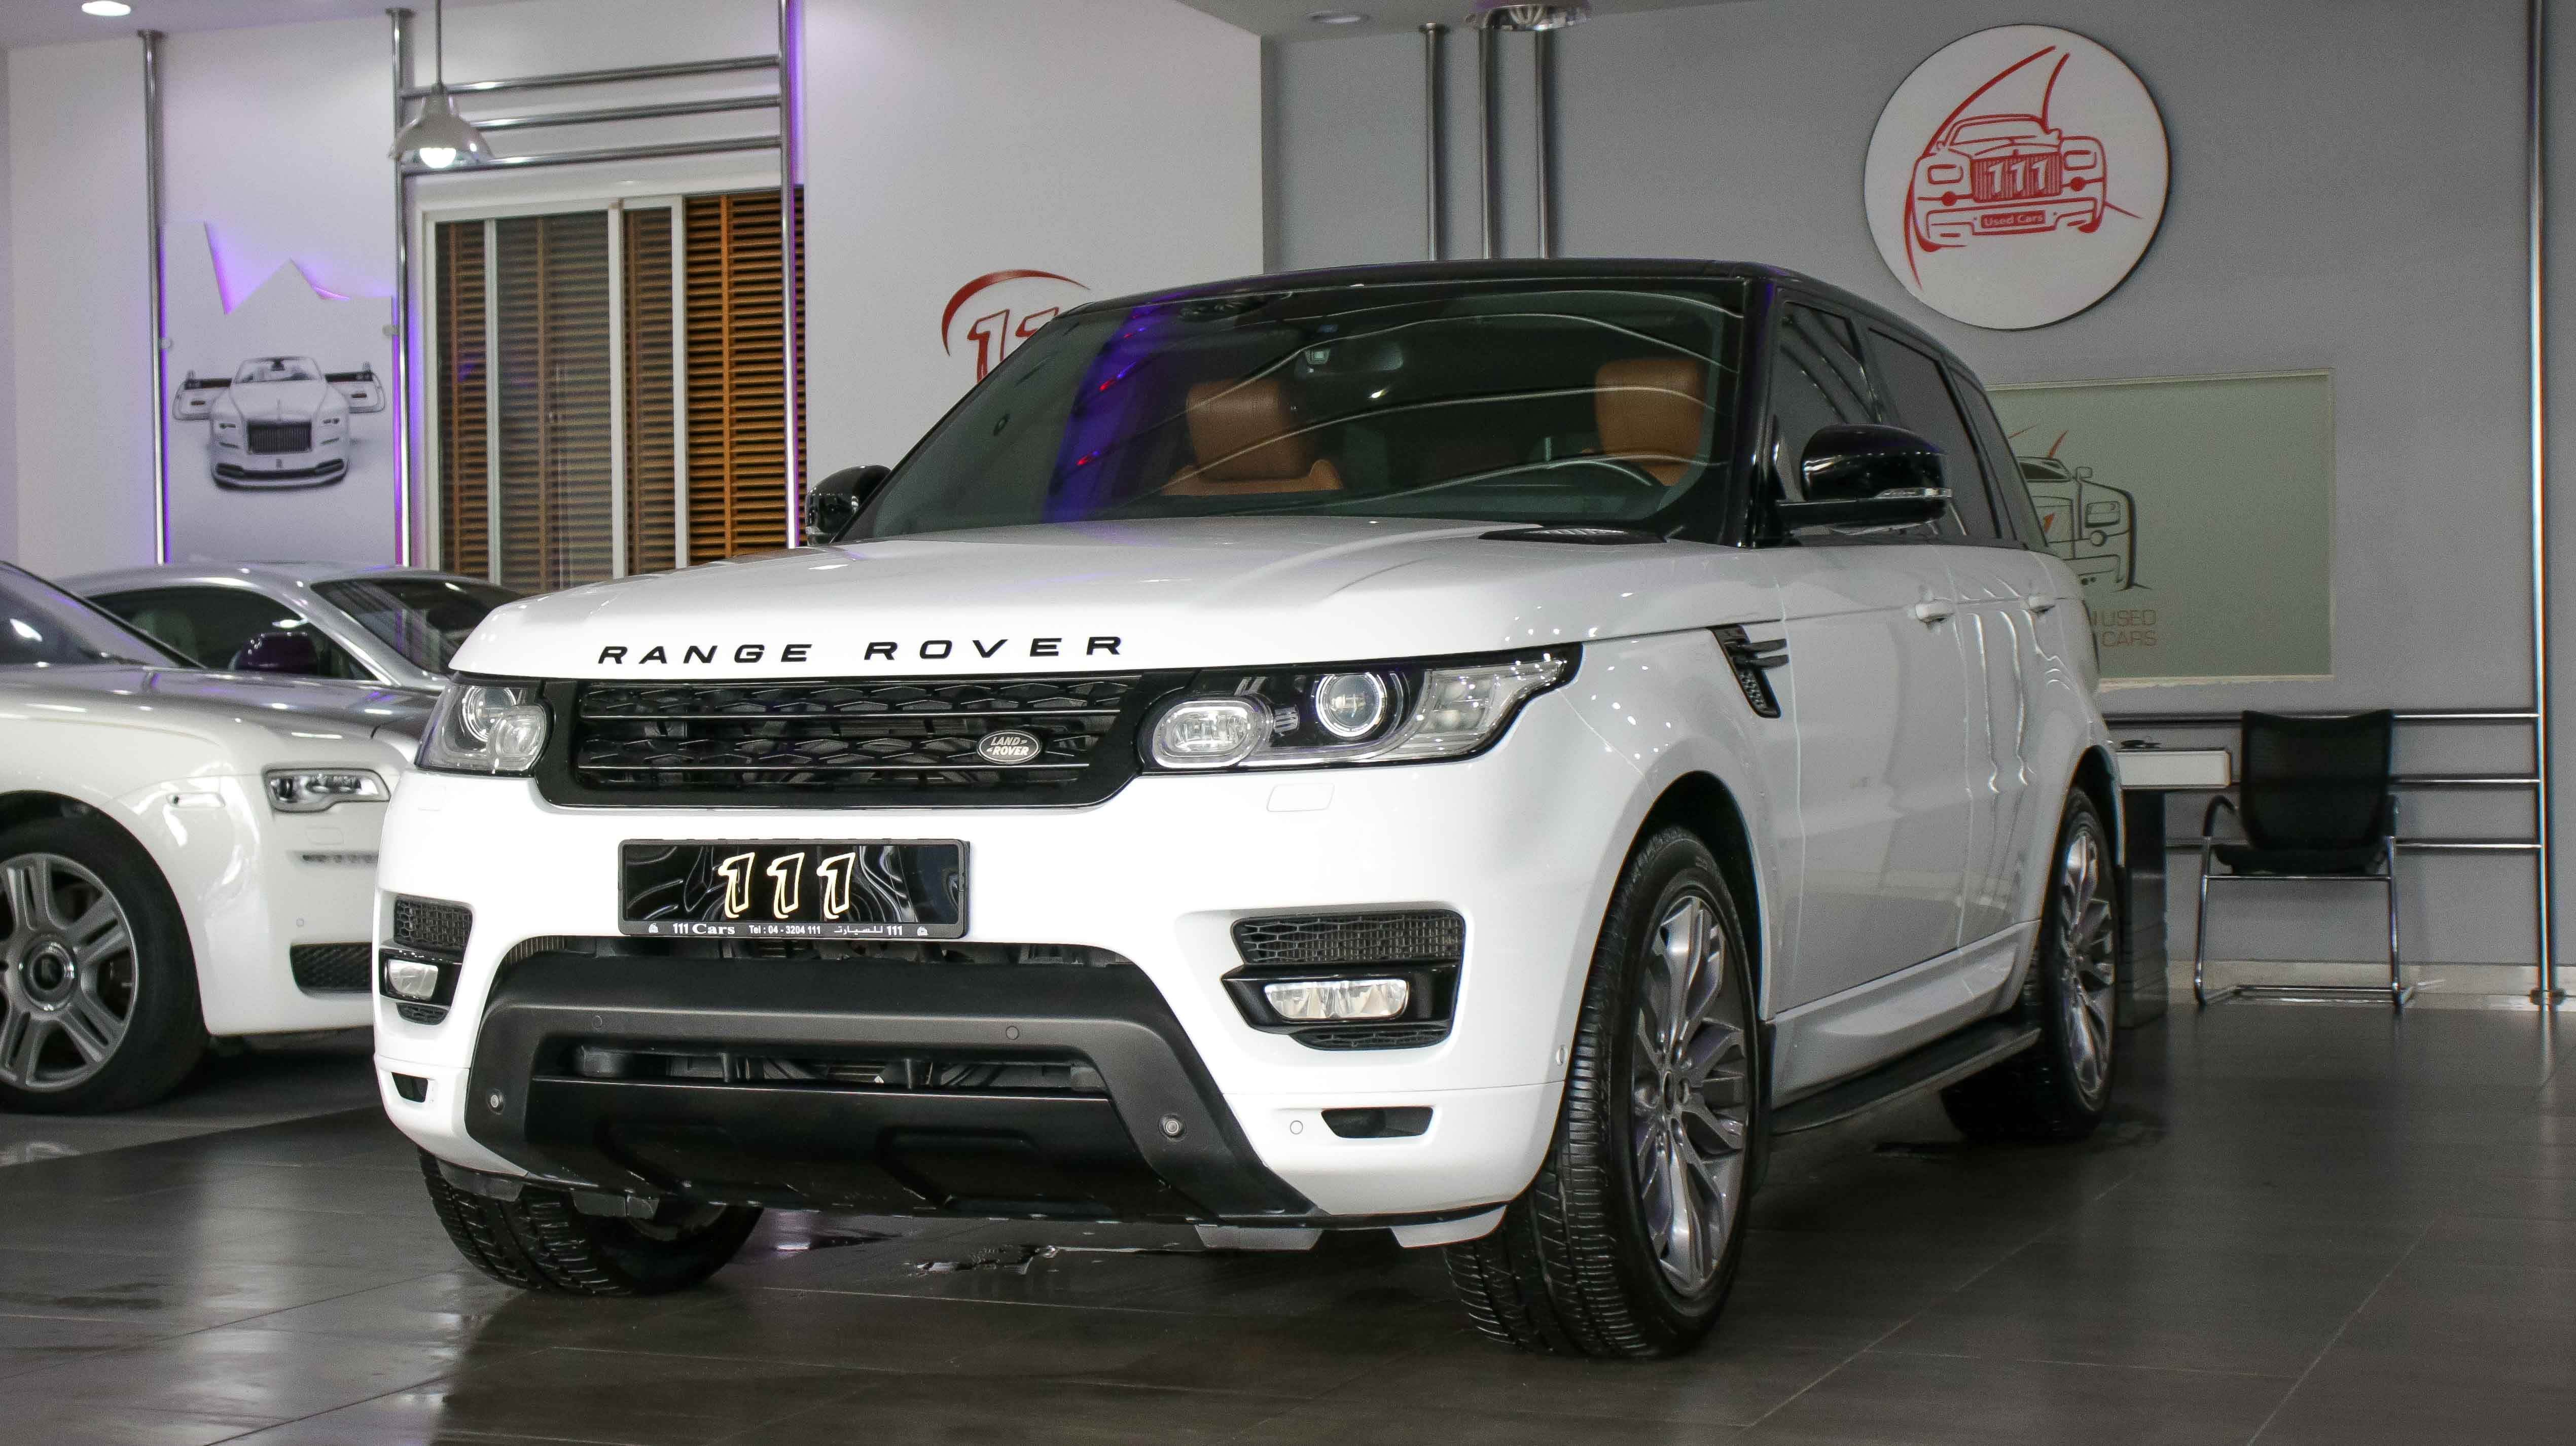 Model Range Rover Sport Supercharged Gcc Specs Year 2014 Km